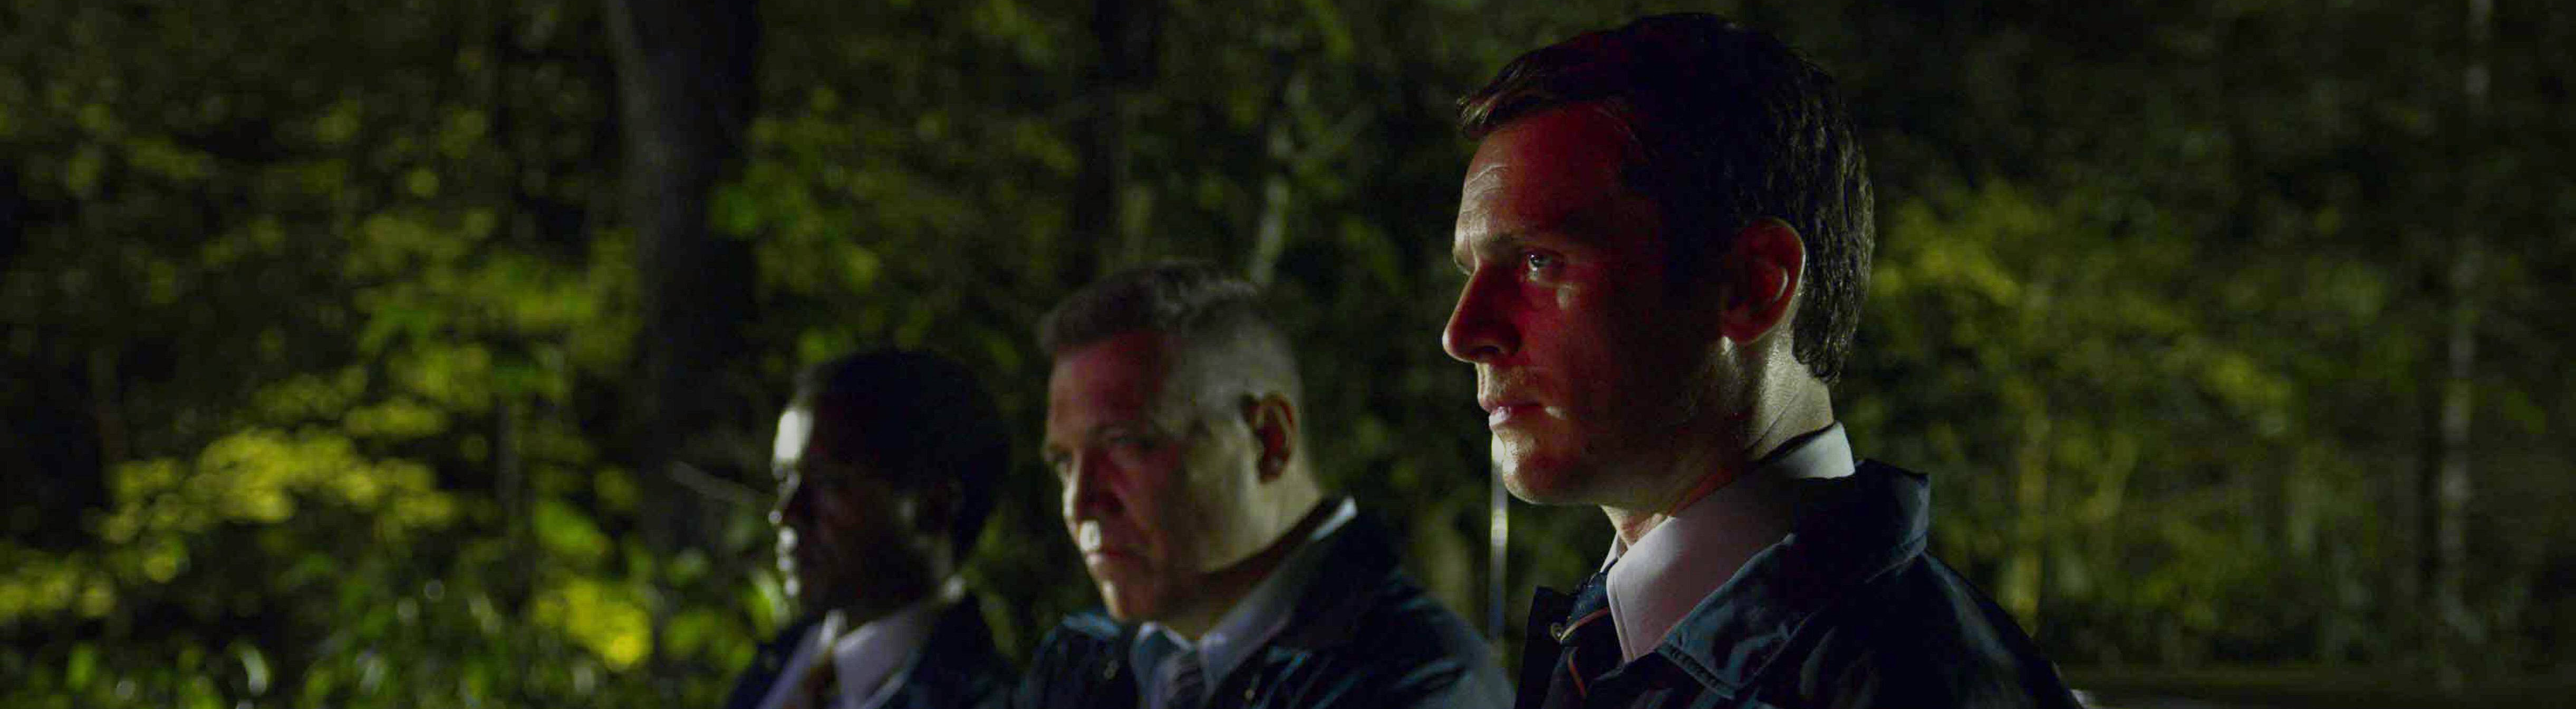 MINDHUNTER 2017- serie TV creee par David Fincher et Joe Penhall saison 2 episode 5 Albert Jones Holt McCallany Jonathan Groff. d apres Mind Hunter: Inside FBI s Elite Serial Crime Unit de Mark Olshaker et John E. Douglas based on the book Mind Hunter: Inside FBI s Elite Serial Crime Unit by Mark Olshaker and John E. Douglas Netflix